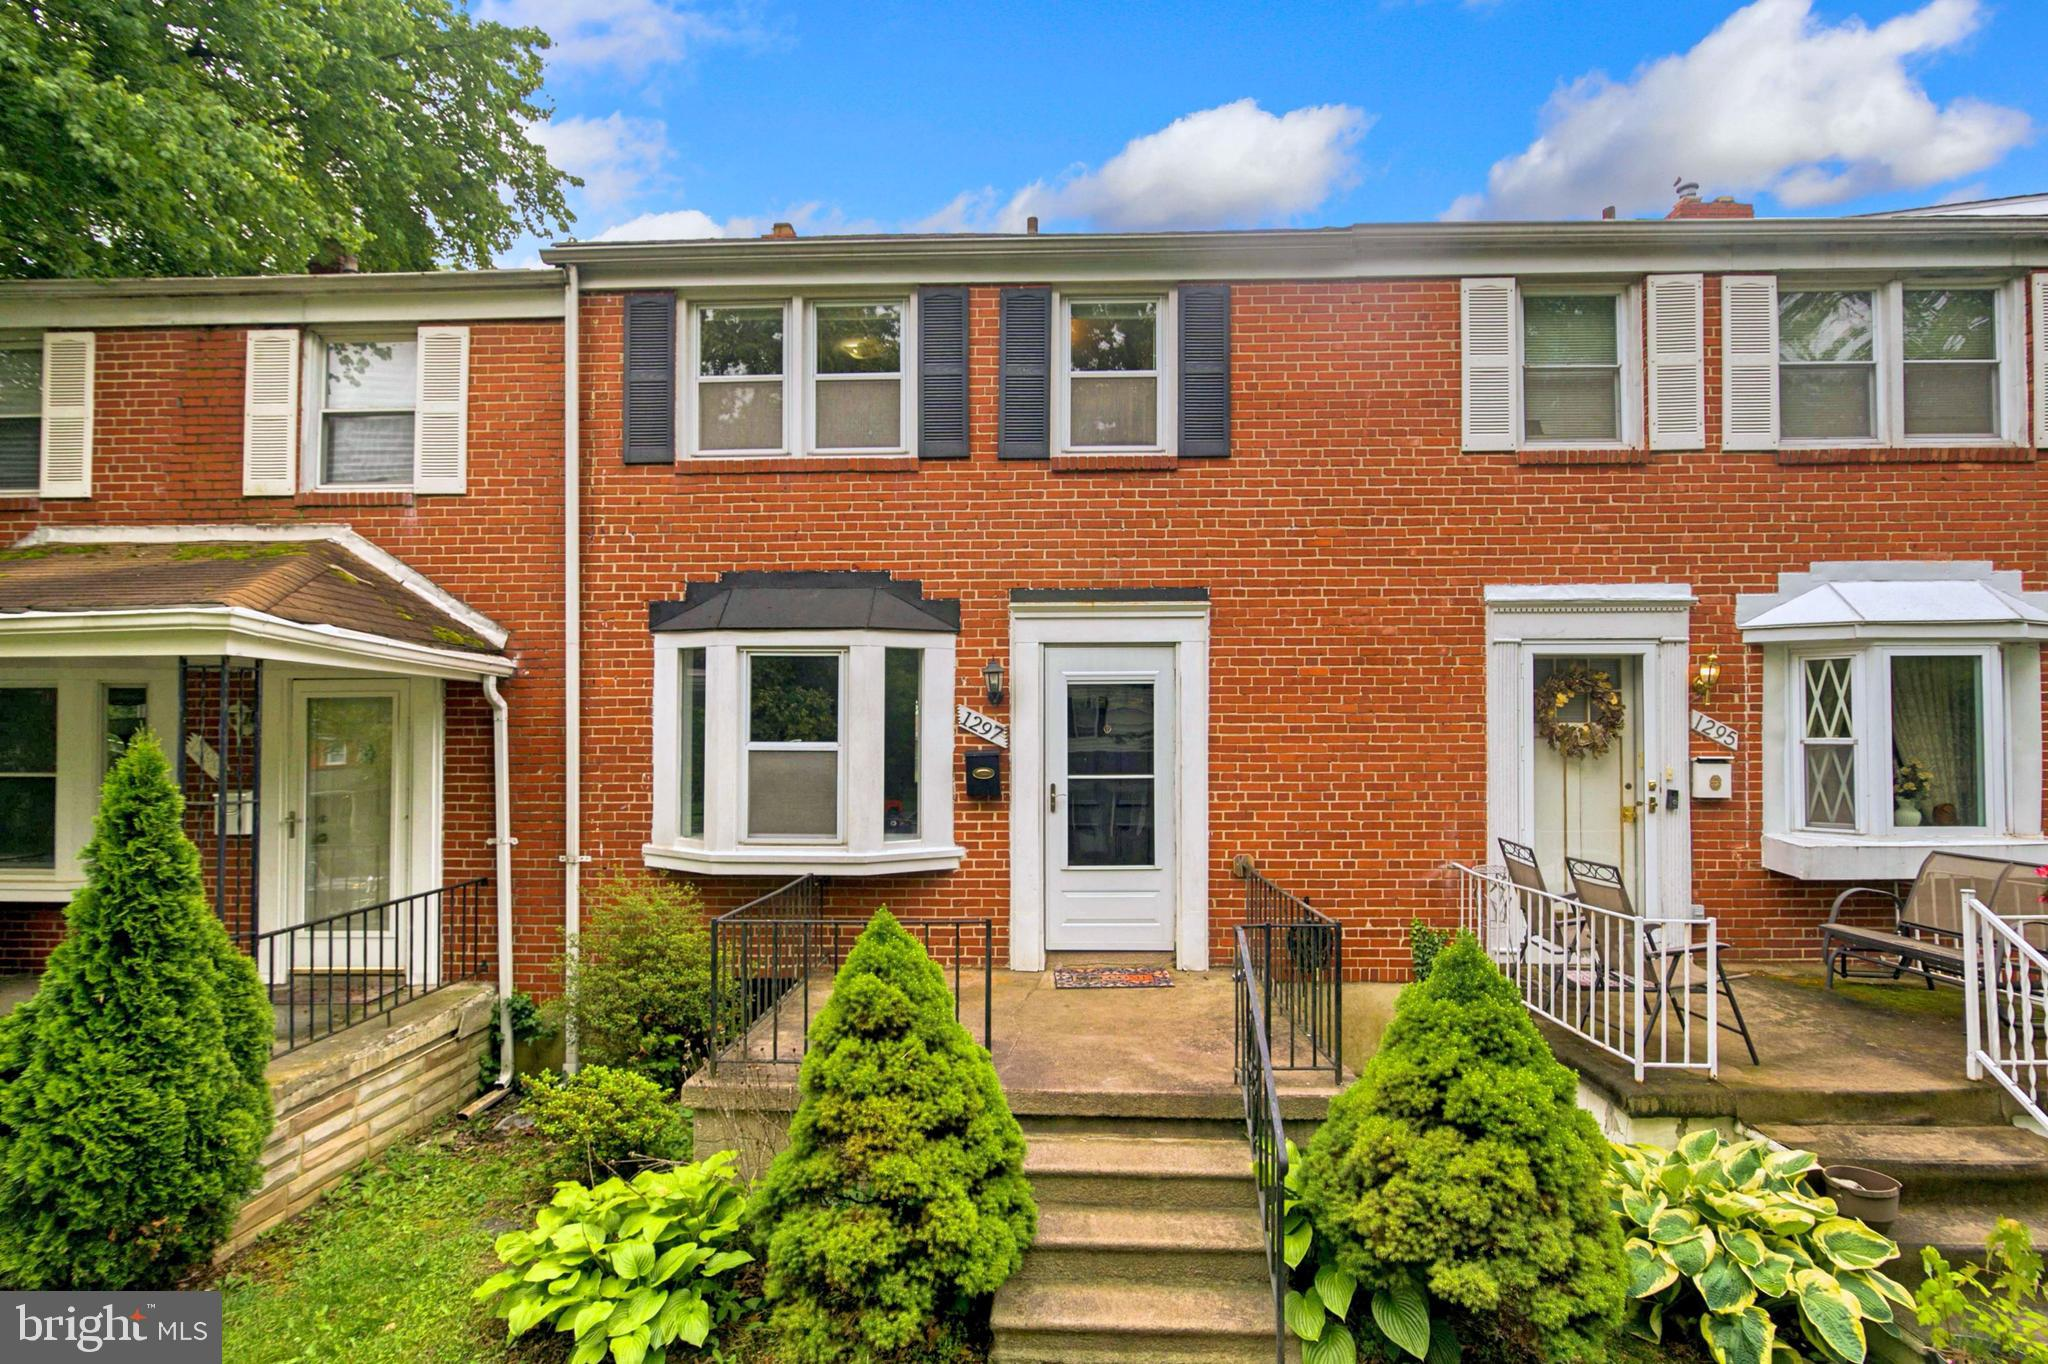 ***OFFER DEADLINE:  BEST AND FINAL BY 7 PM - 6/14/2021.  NO ESCALATION CLAUSES.    Maintained, Updated, Move-In Ready townhome in Idlewood. The main level boasts cool toned walls, white trim, and carpet in the spacious Living Room and Dining Room. The updated Kitchen has new vinyl flooring, modern backslash, and cream colored cabinets. Three nicely-sized bedrooms with original hardwood flooring and a full bath with original tile work complete the upper-level sleeping quarters. The lower level of the open features a large Recreation Room, Powder Room, and massive Laundry Room that can be customized to best suit your needs. Enter your sizable, fenced rear yard from the main or lower level. Picture yourself enjoying cookouts, kickbacks, or creating a garden for fresh produce and flowers; the possibilities are endless. The home is centrally located to several universities, shopping, restaurants, outdoor recreation, and entertainment. Book your appointment today for this gem in Idlewood.